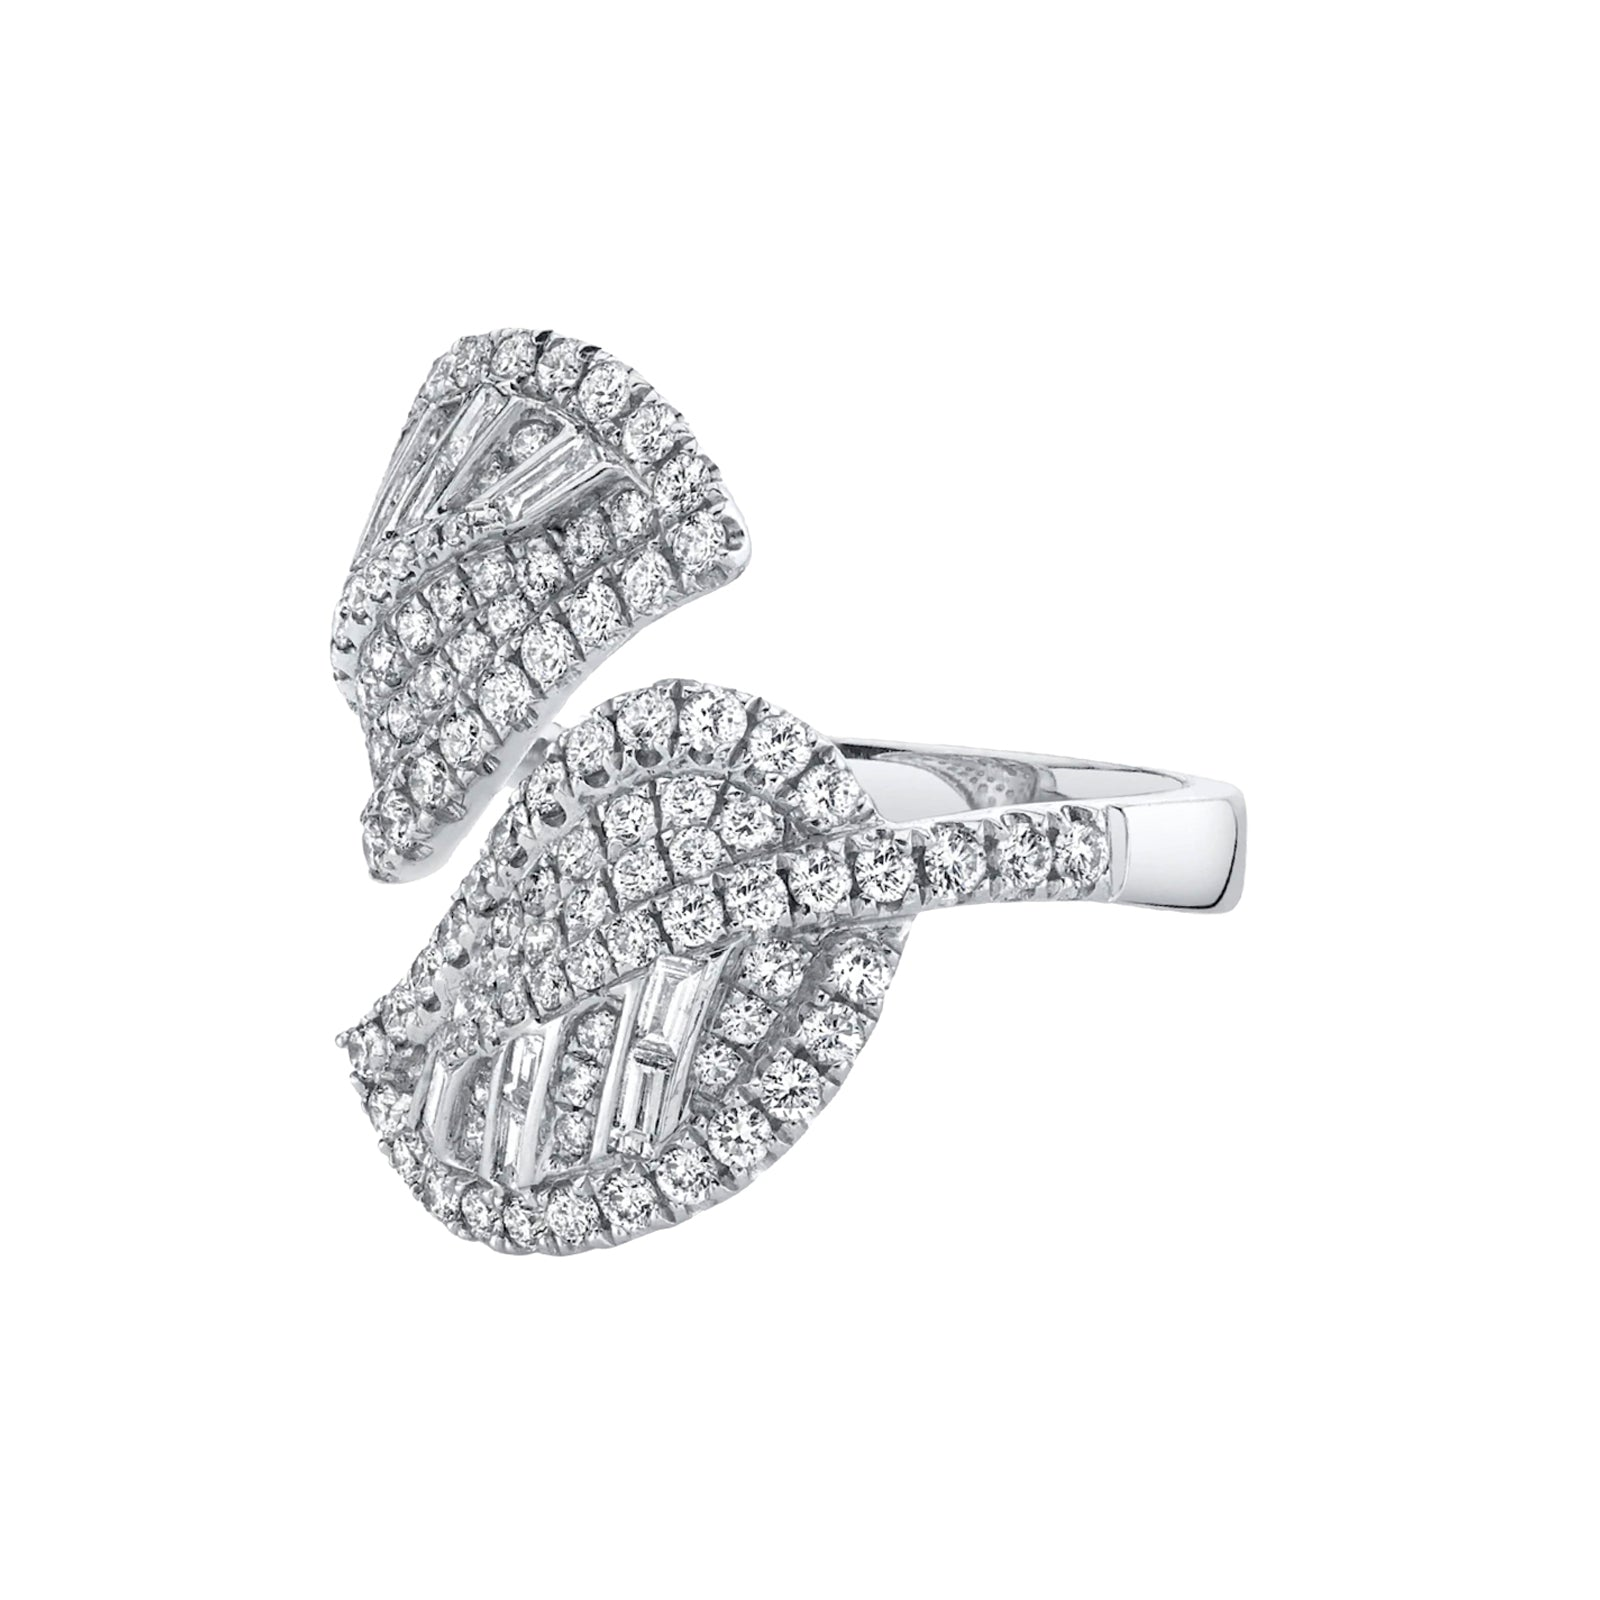 Anita Ko Diamond Cluster Leaf Ring - Rings - Broken English Jewelry